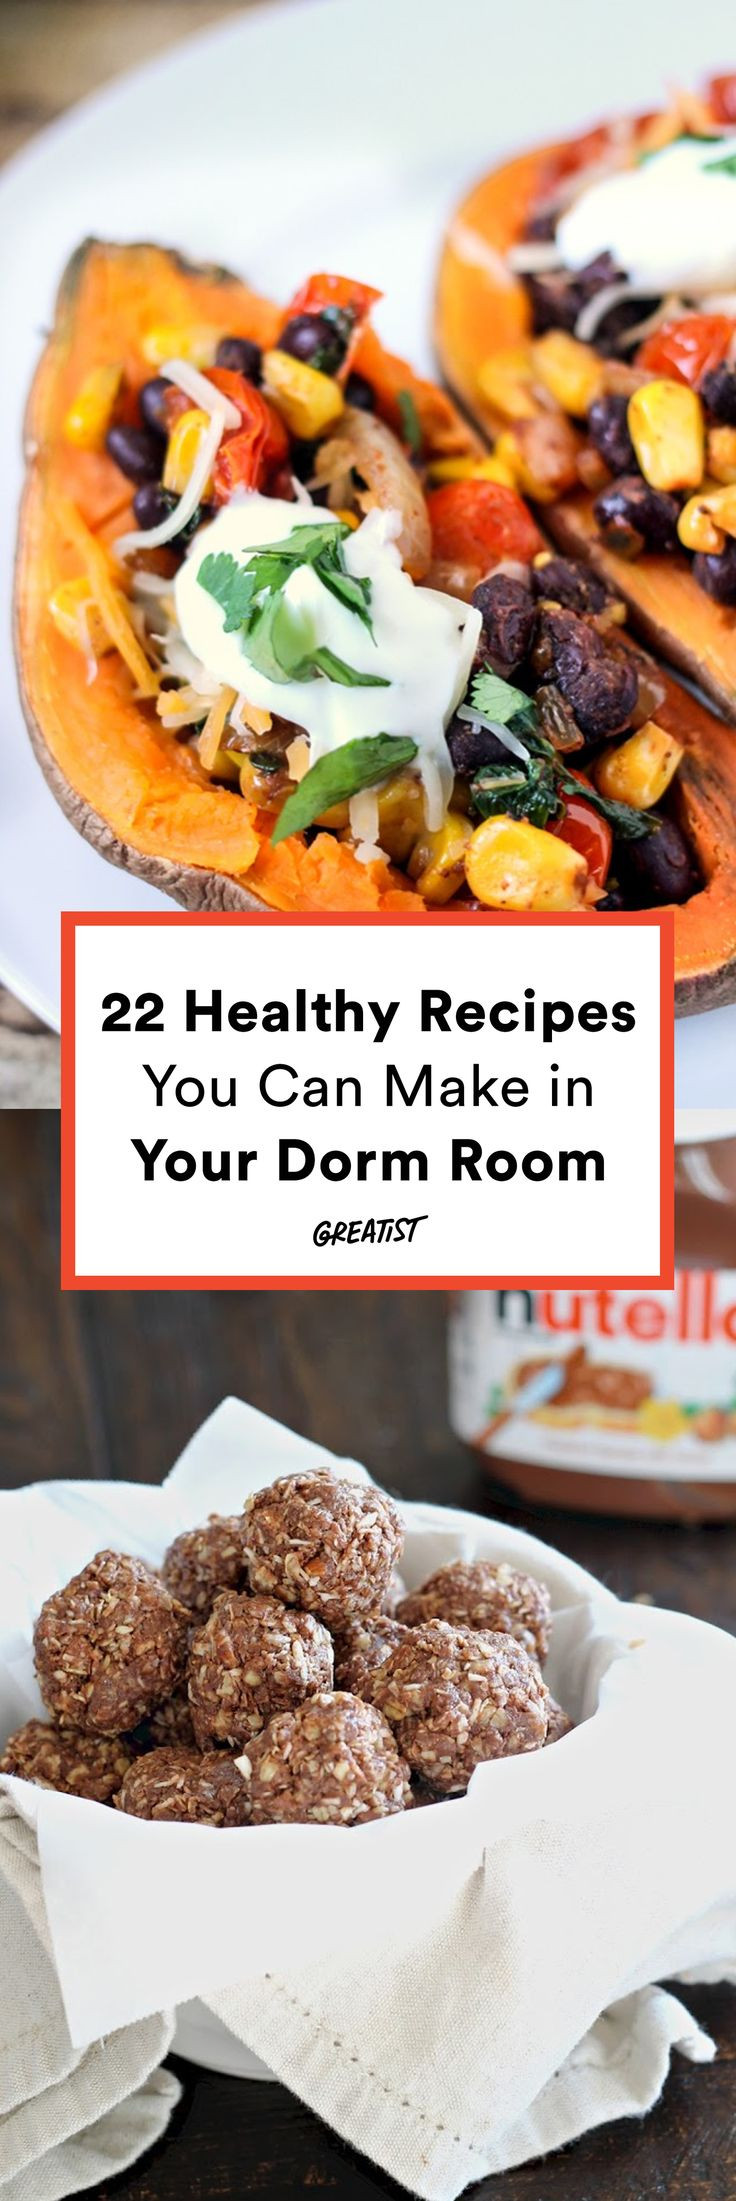 Healthy Snacks For College Dorms  22 Healthy College Recipes You Can Make in Your Dorm Room